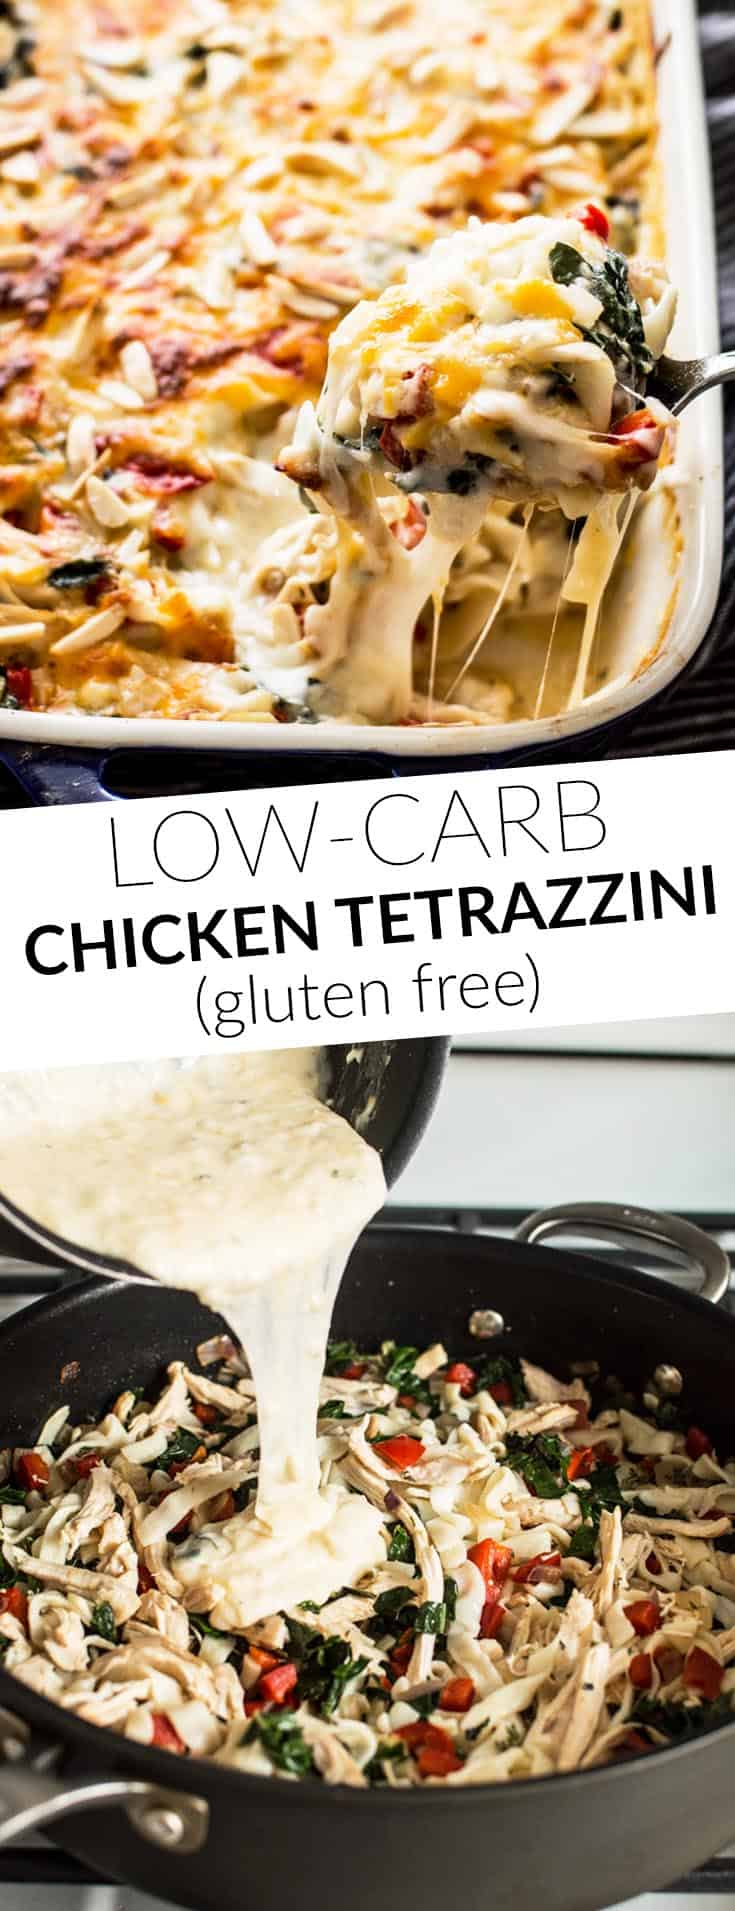 Low Carb Chicken Tetrazzini - this gluten-free cheesy wonder uses tofu shirataki noodles instead of pasta! by @healthynibs